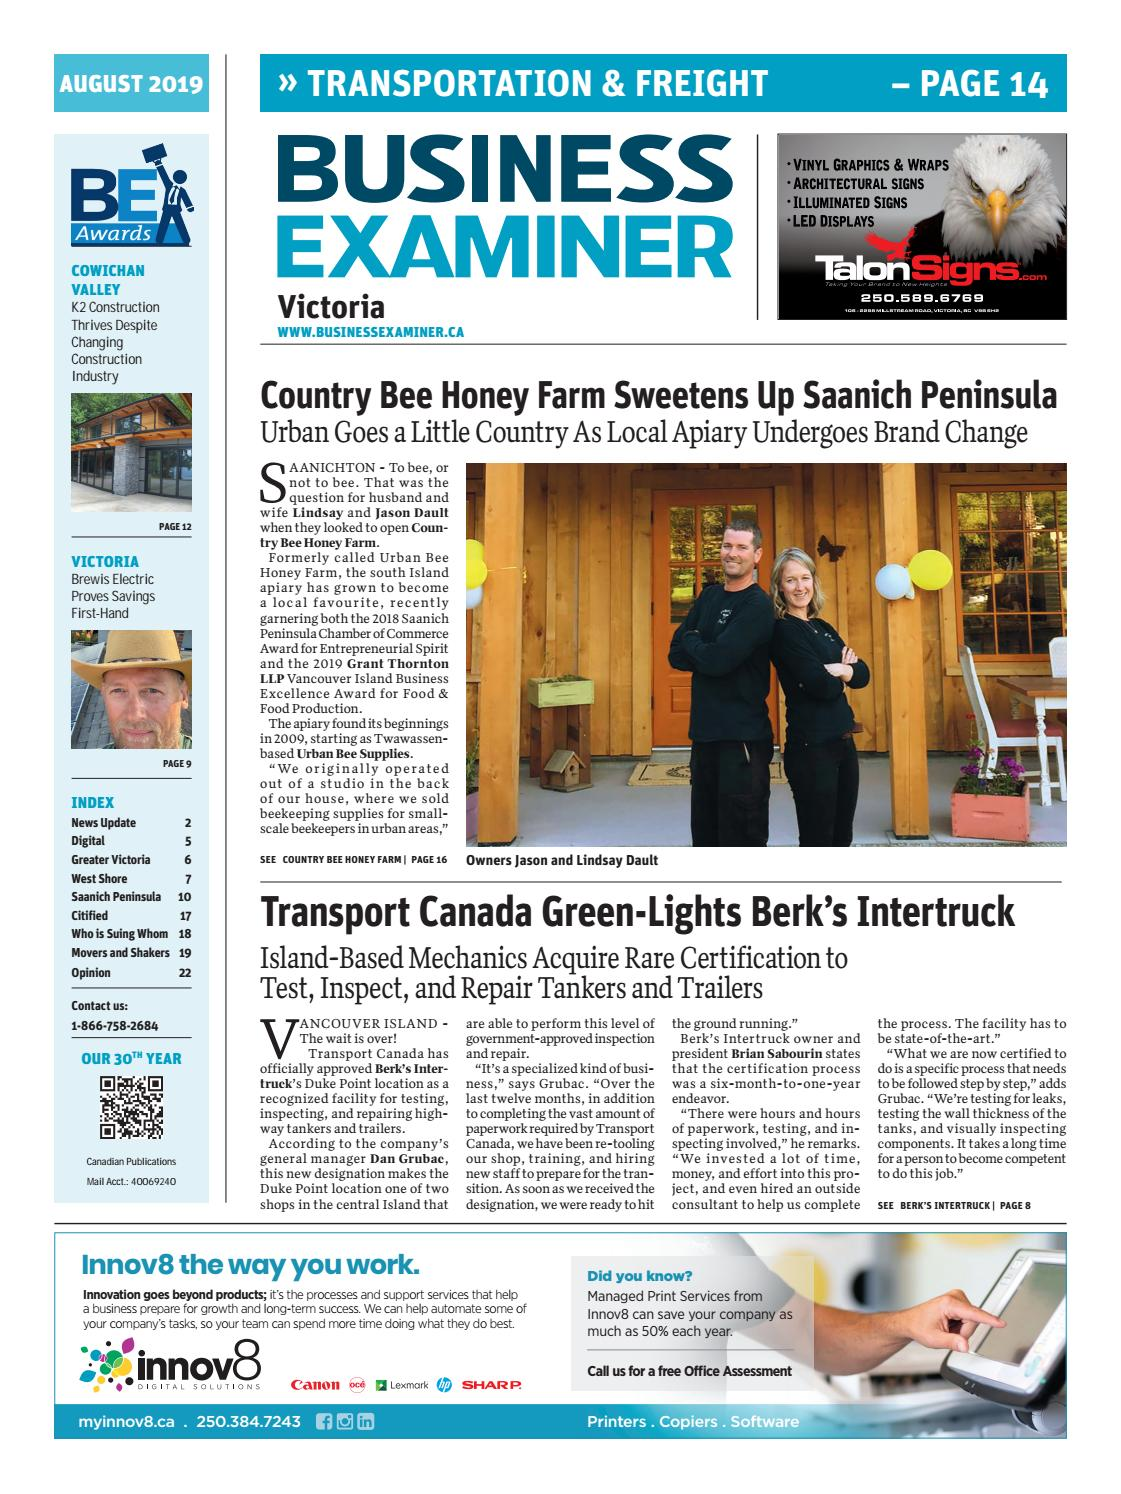 Mobil1 Us Onlineform >> Business Examiner Victoria August 2019 By Business